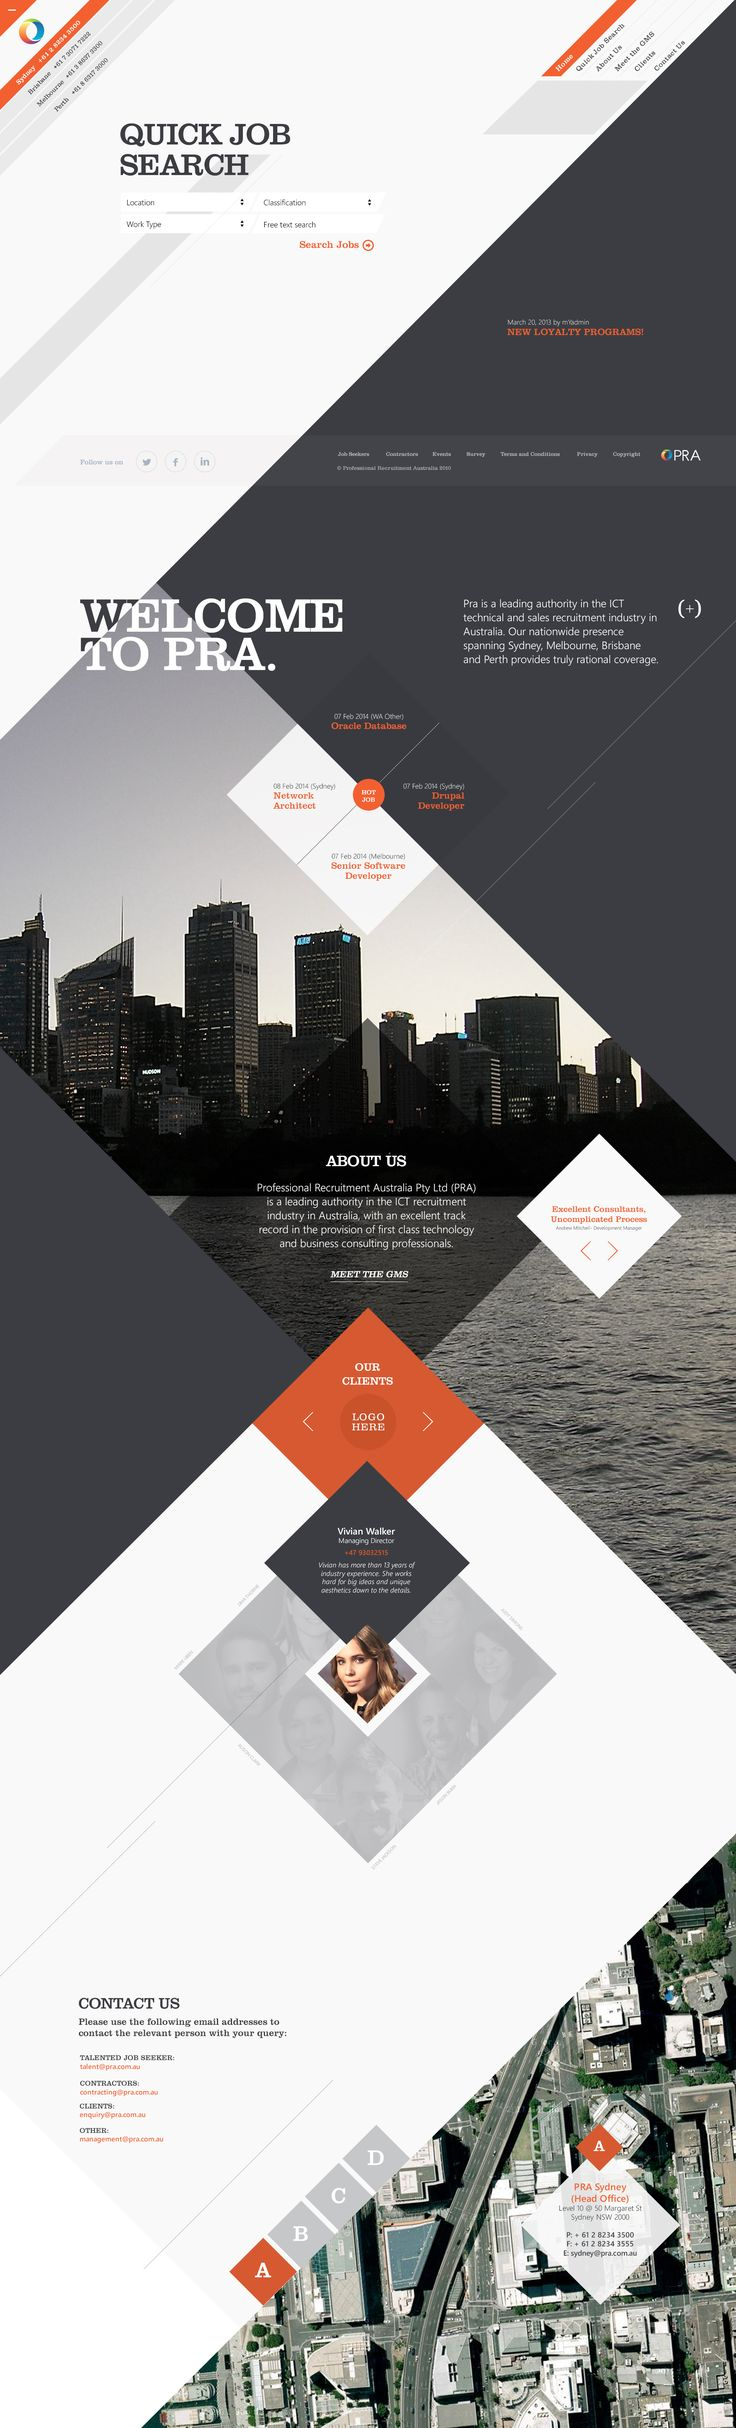 Cool Web Design on the Internet, PRA. #webdesign #webdevelopment #website